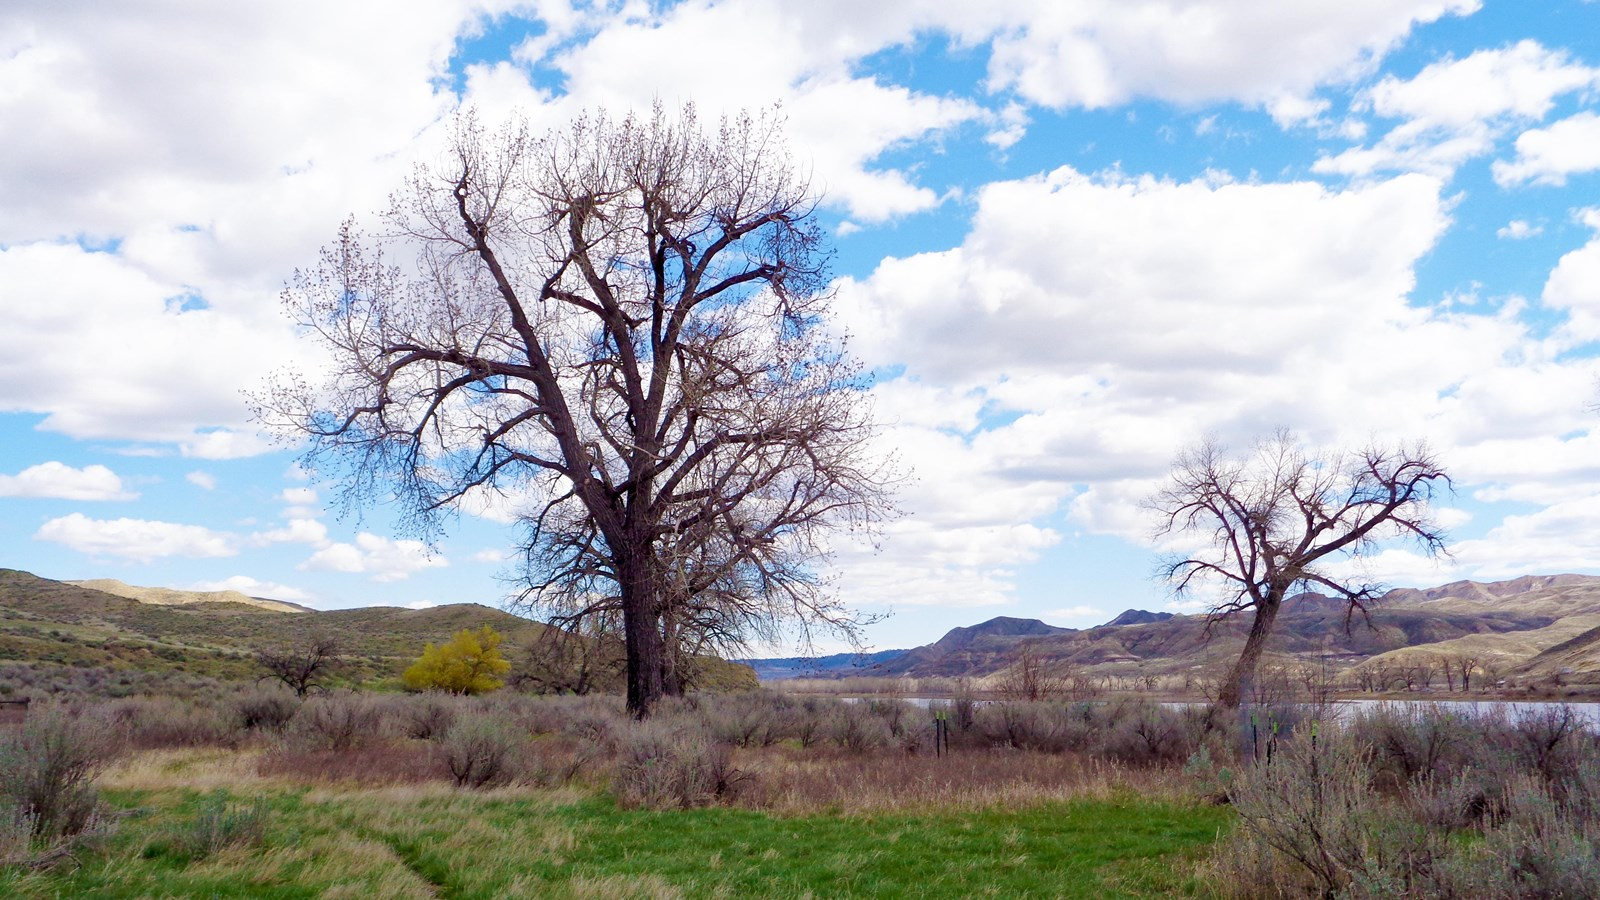 Grassy river bottoms with two large cottonwood trees with river in the background